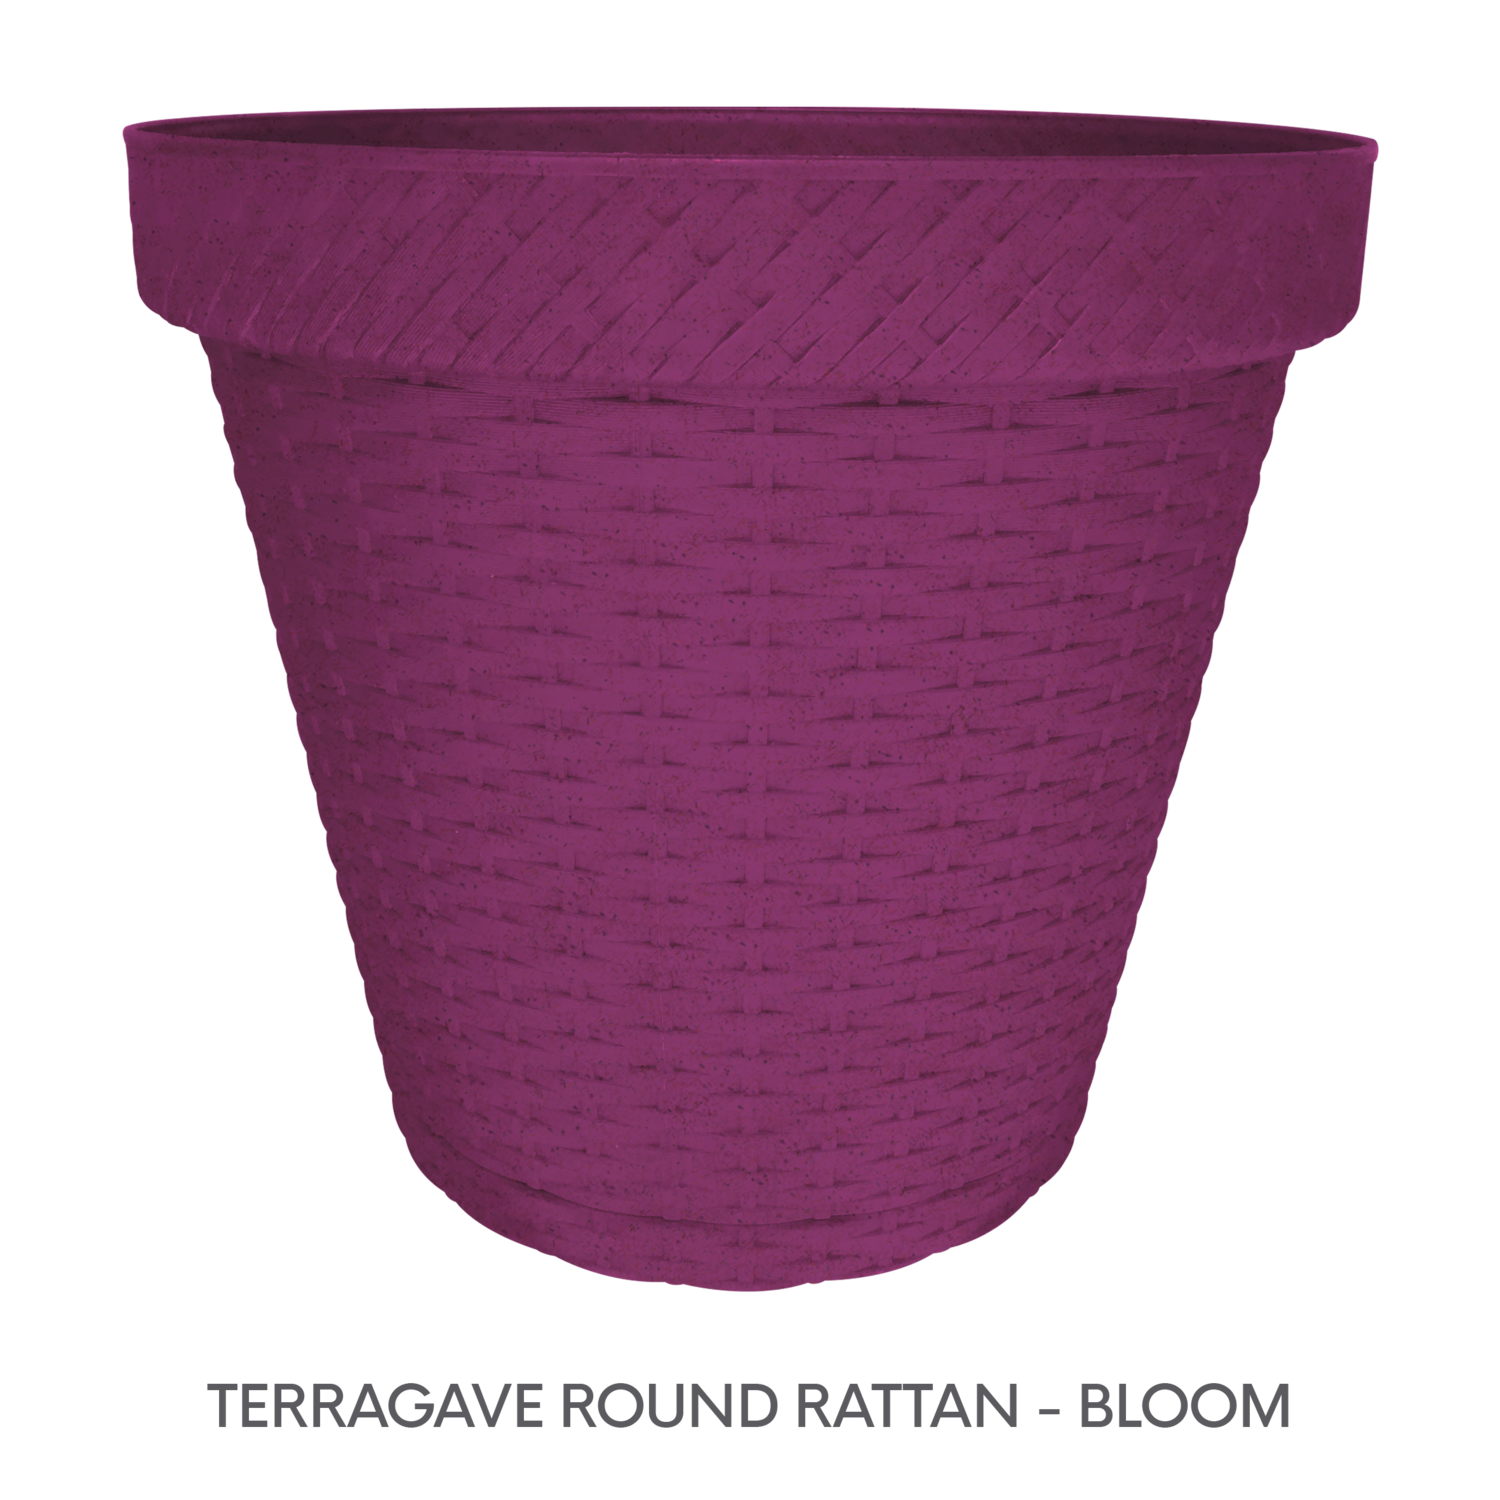 7 TERRAGAVE ROUND RATTAN - BLOOM.png